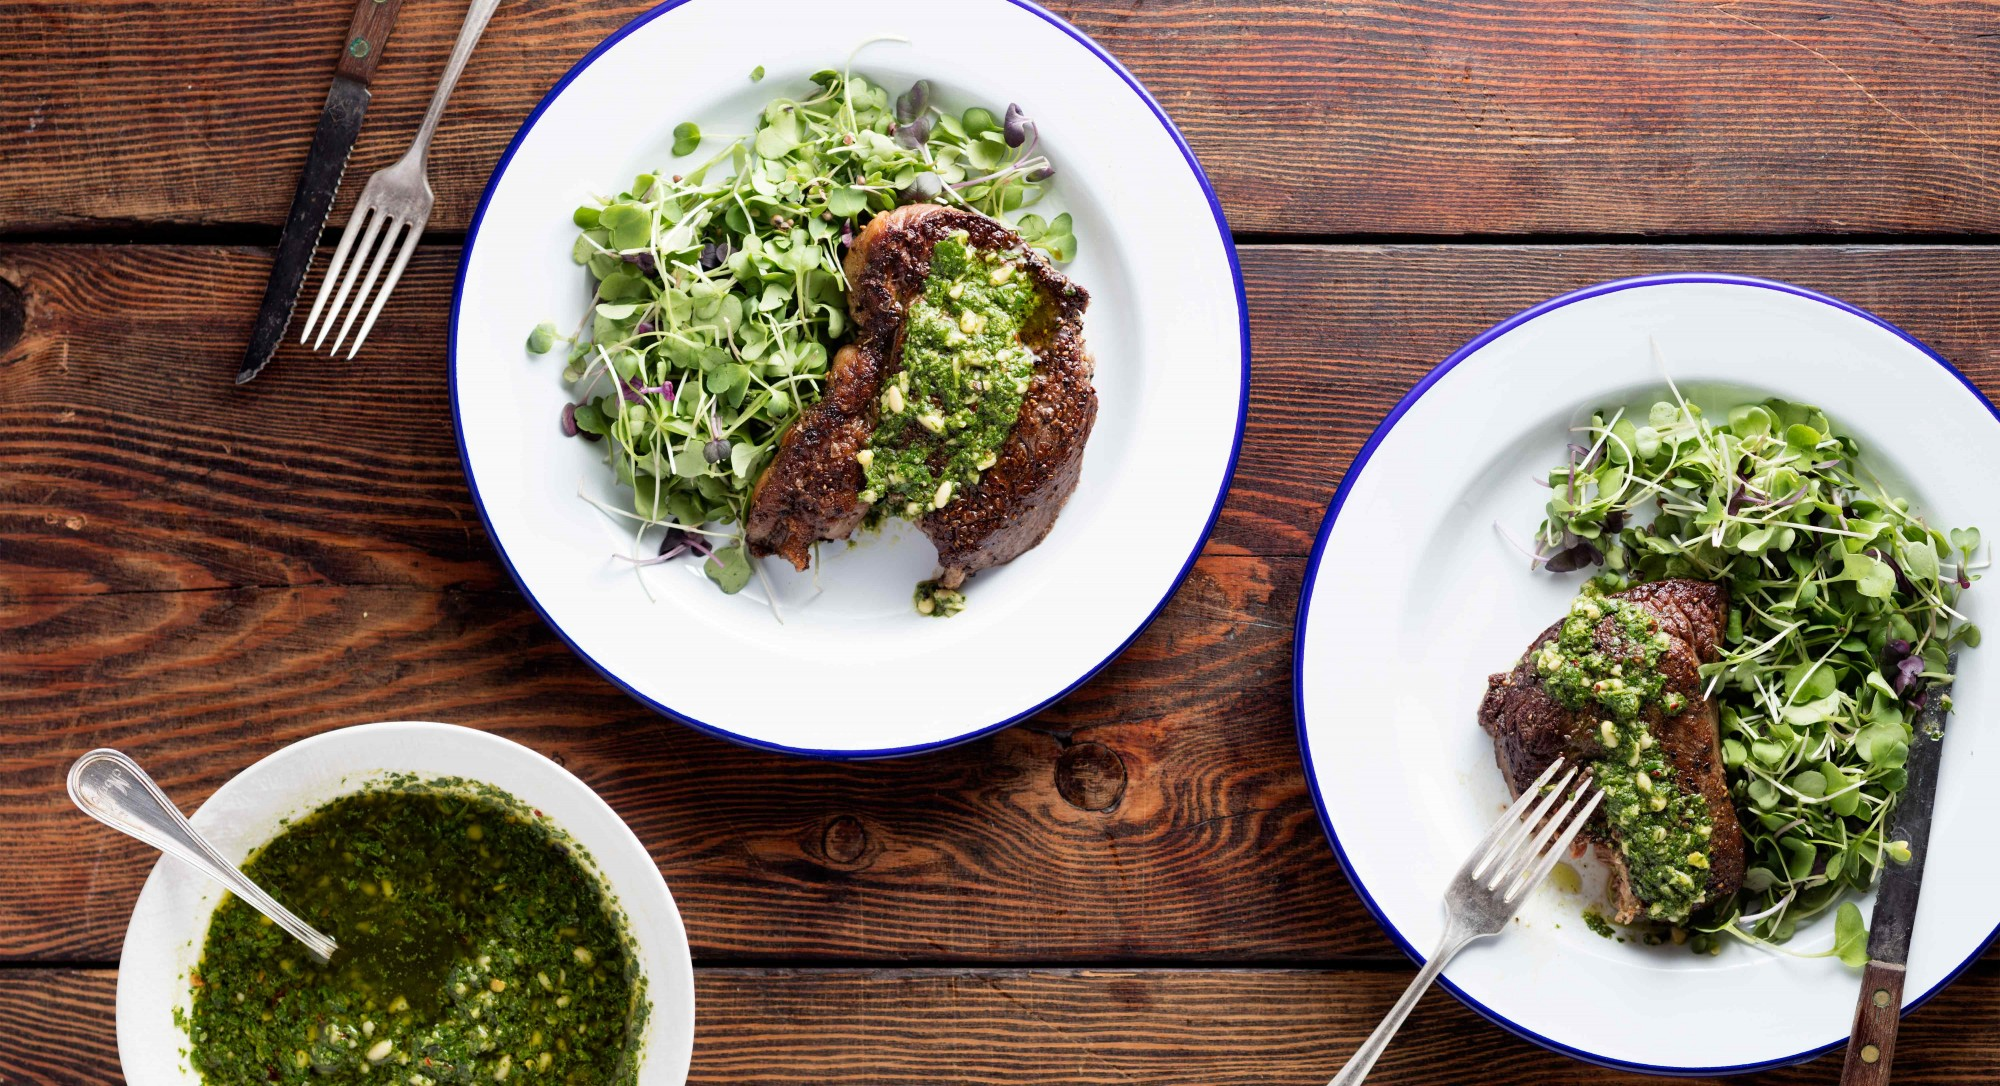 Our Bright Pine Nut Chimichurri Adds Big Flavor to Grilled Meats